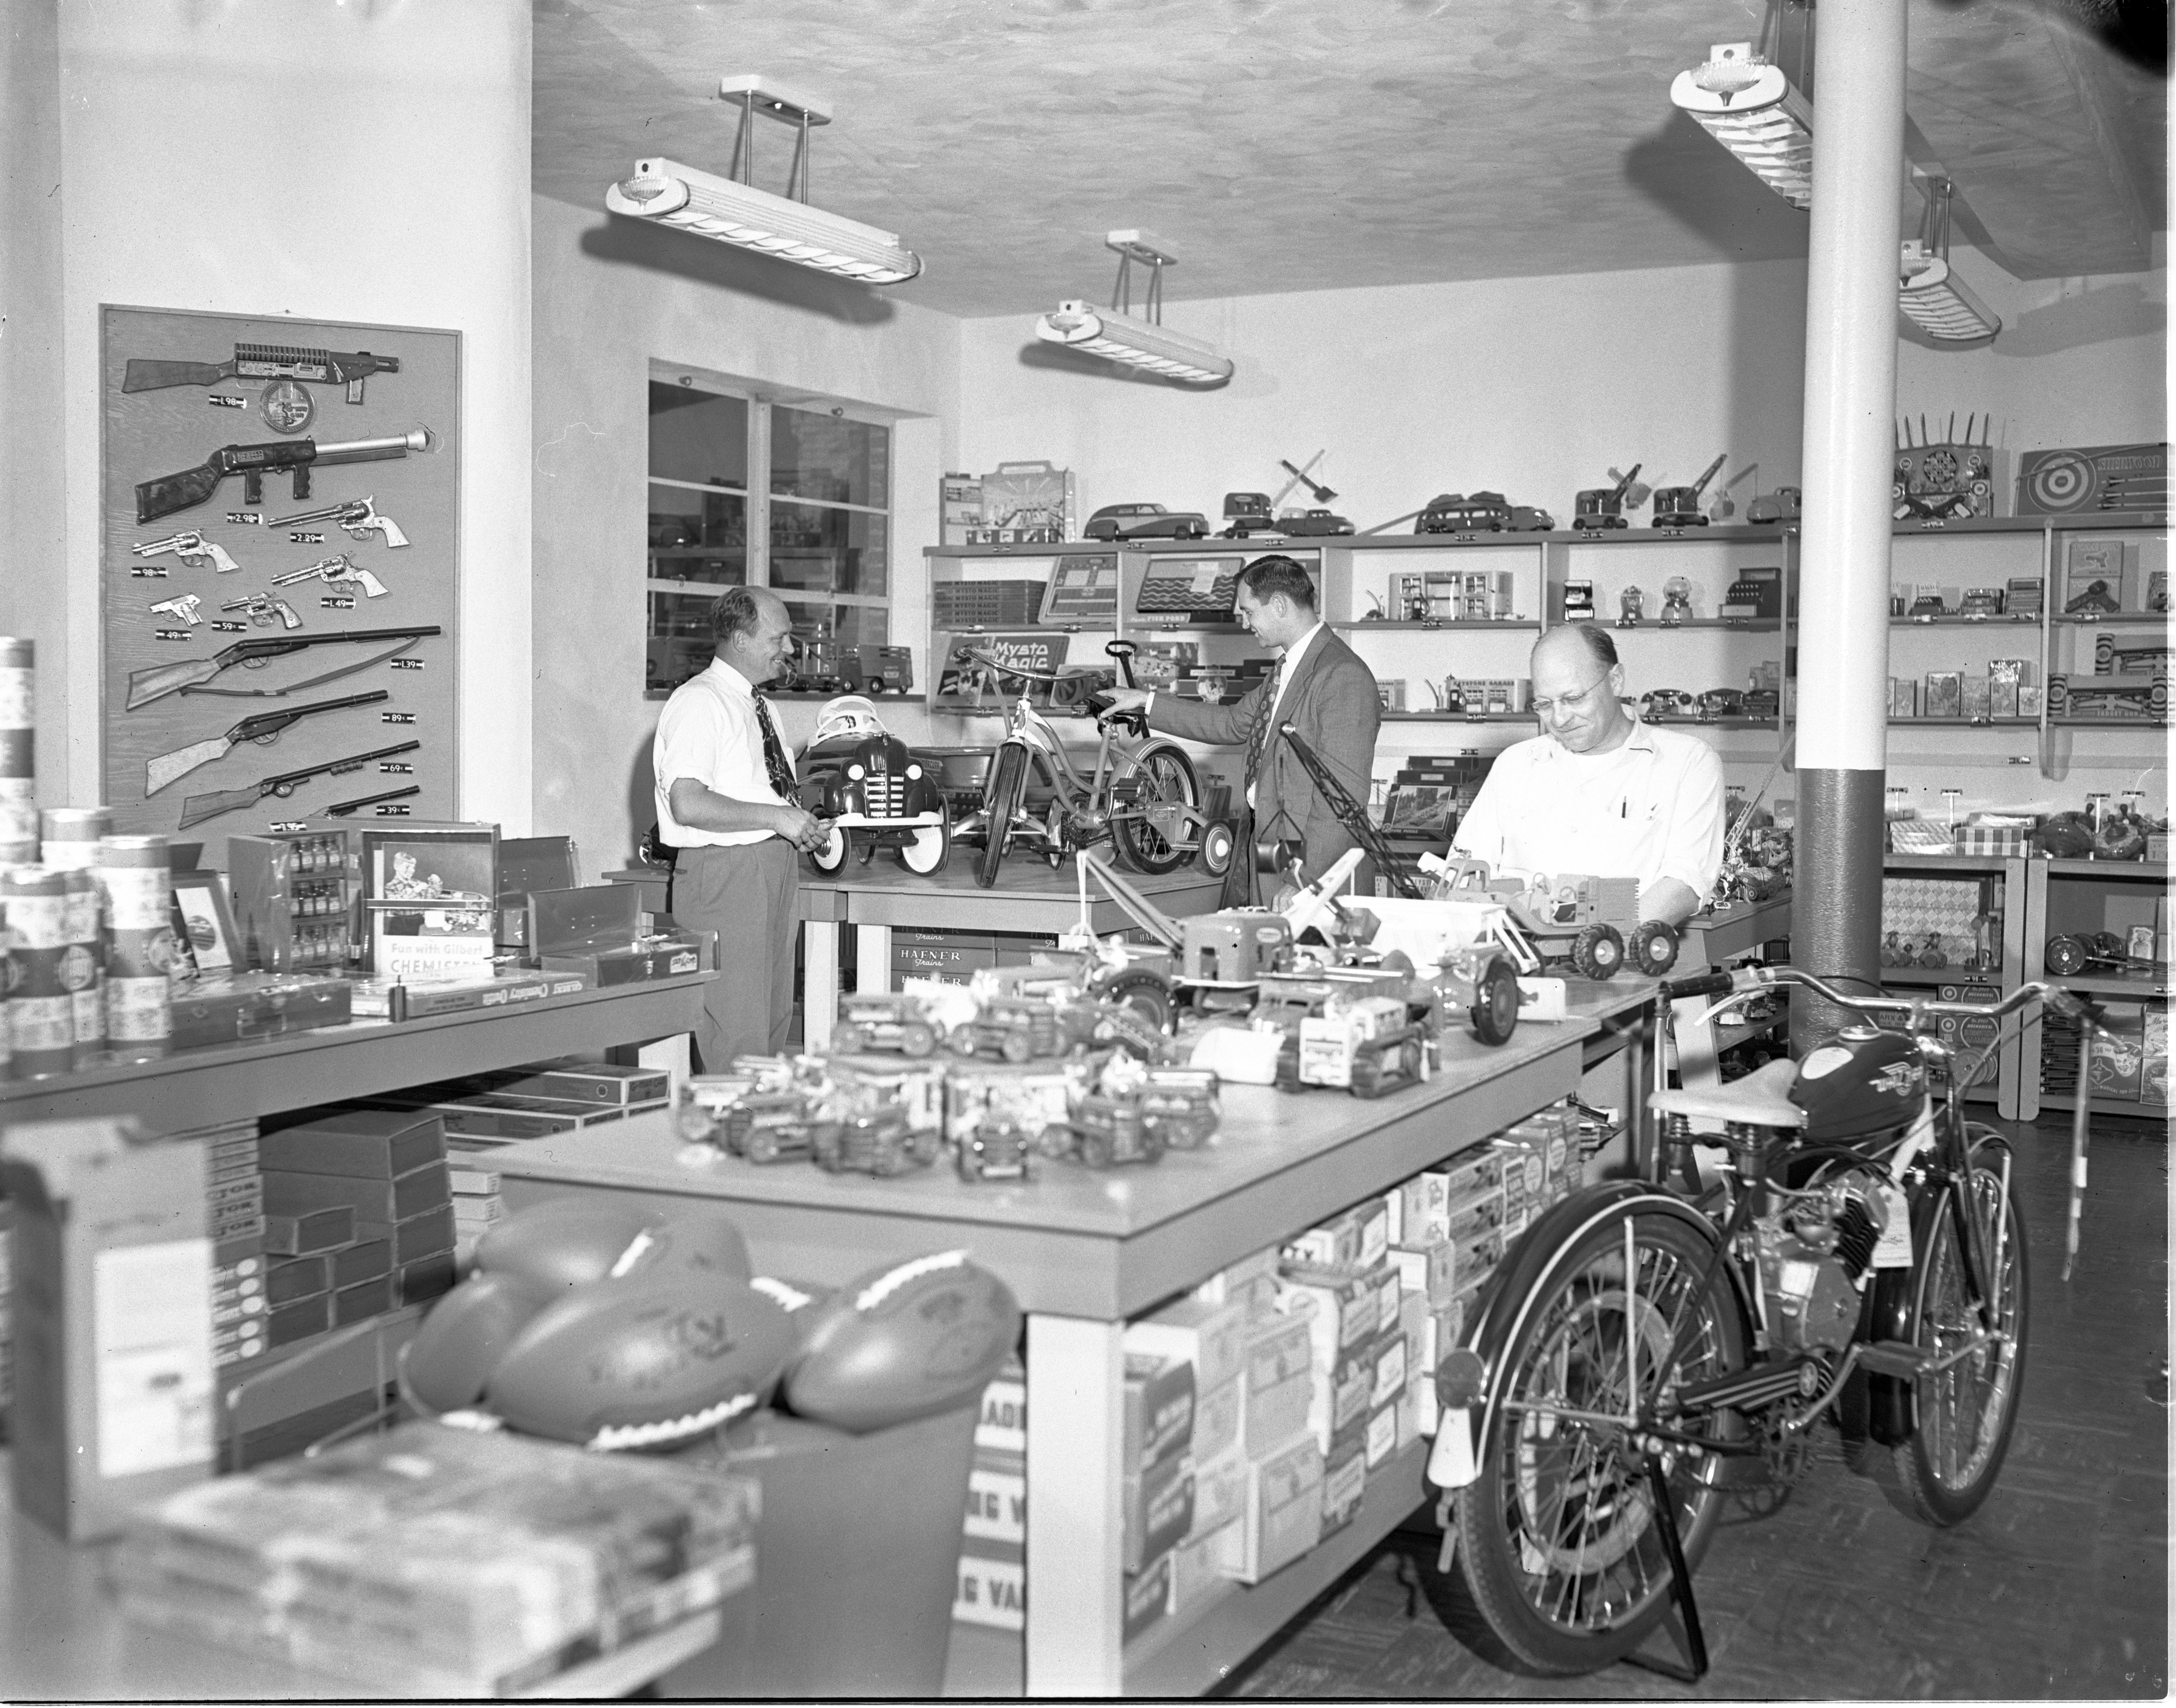 New Kiddie Korner Toy Store Nearly Ready To Open, September 1949 image